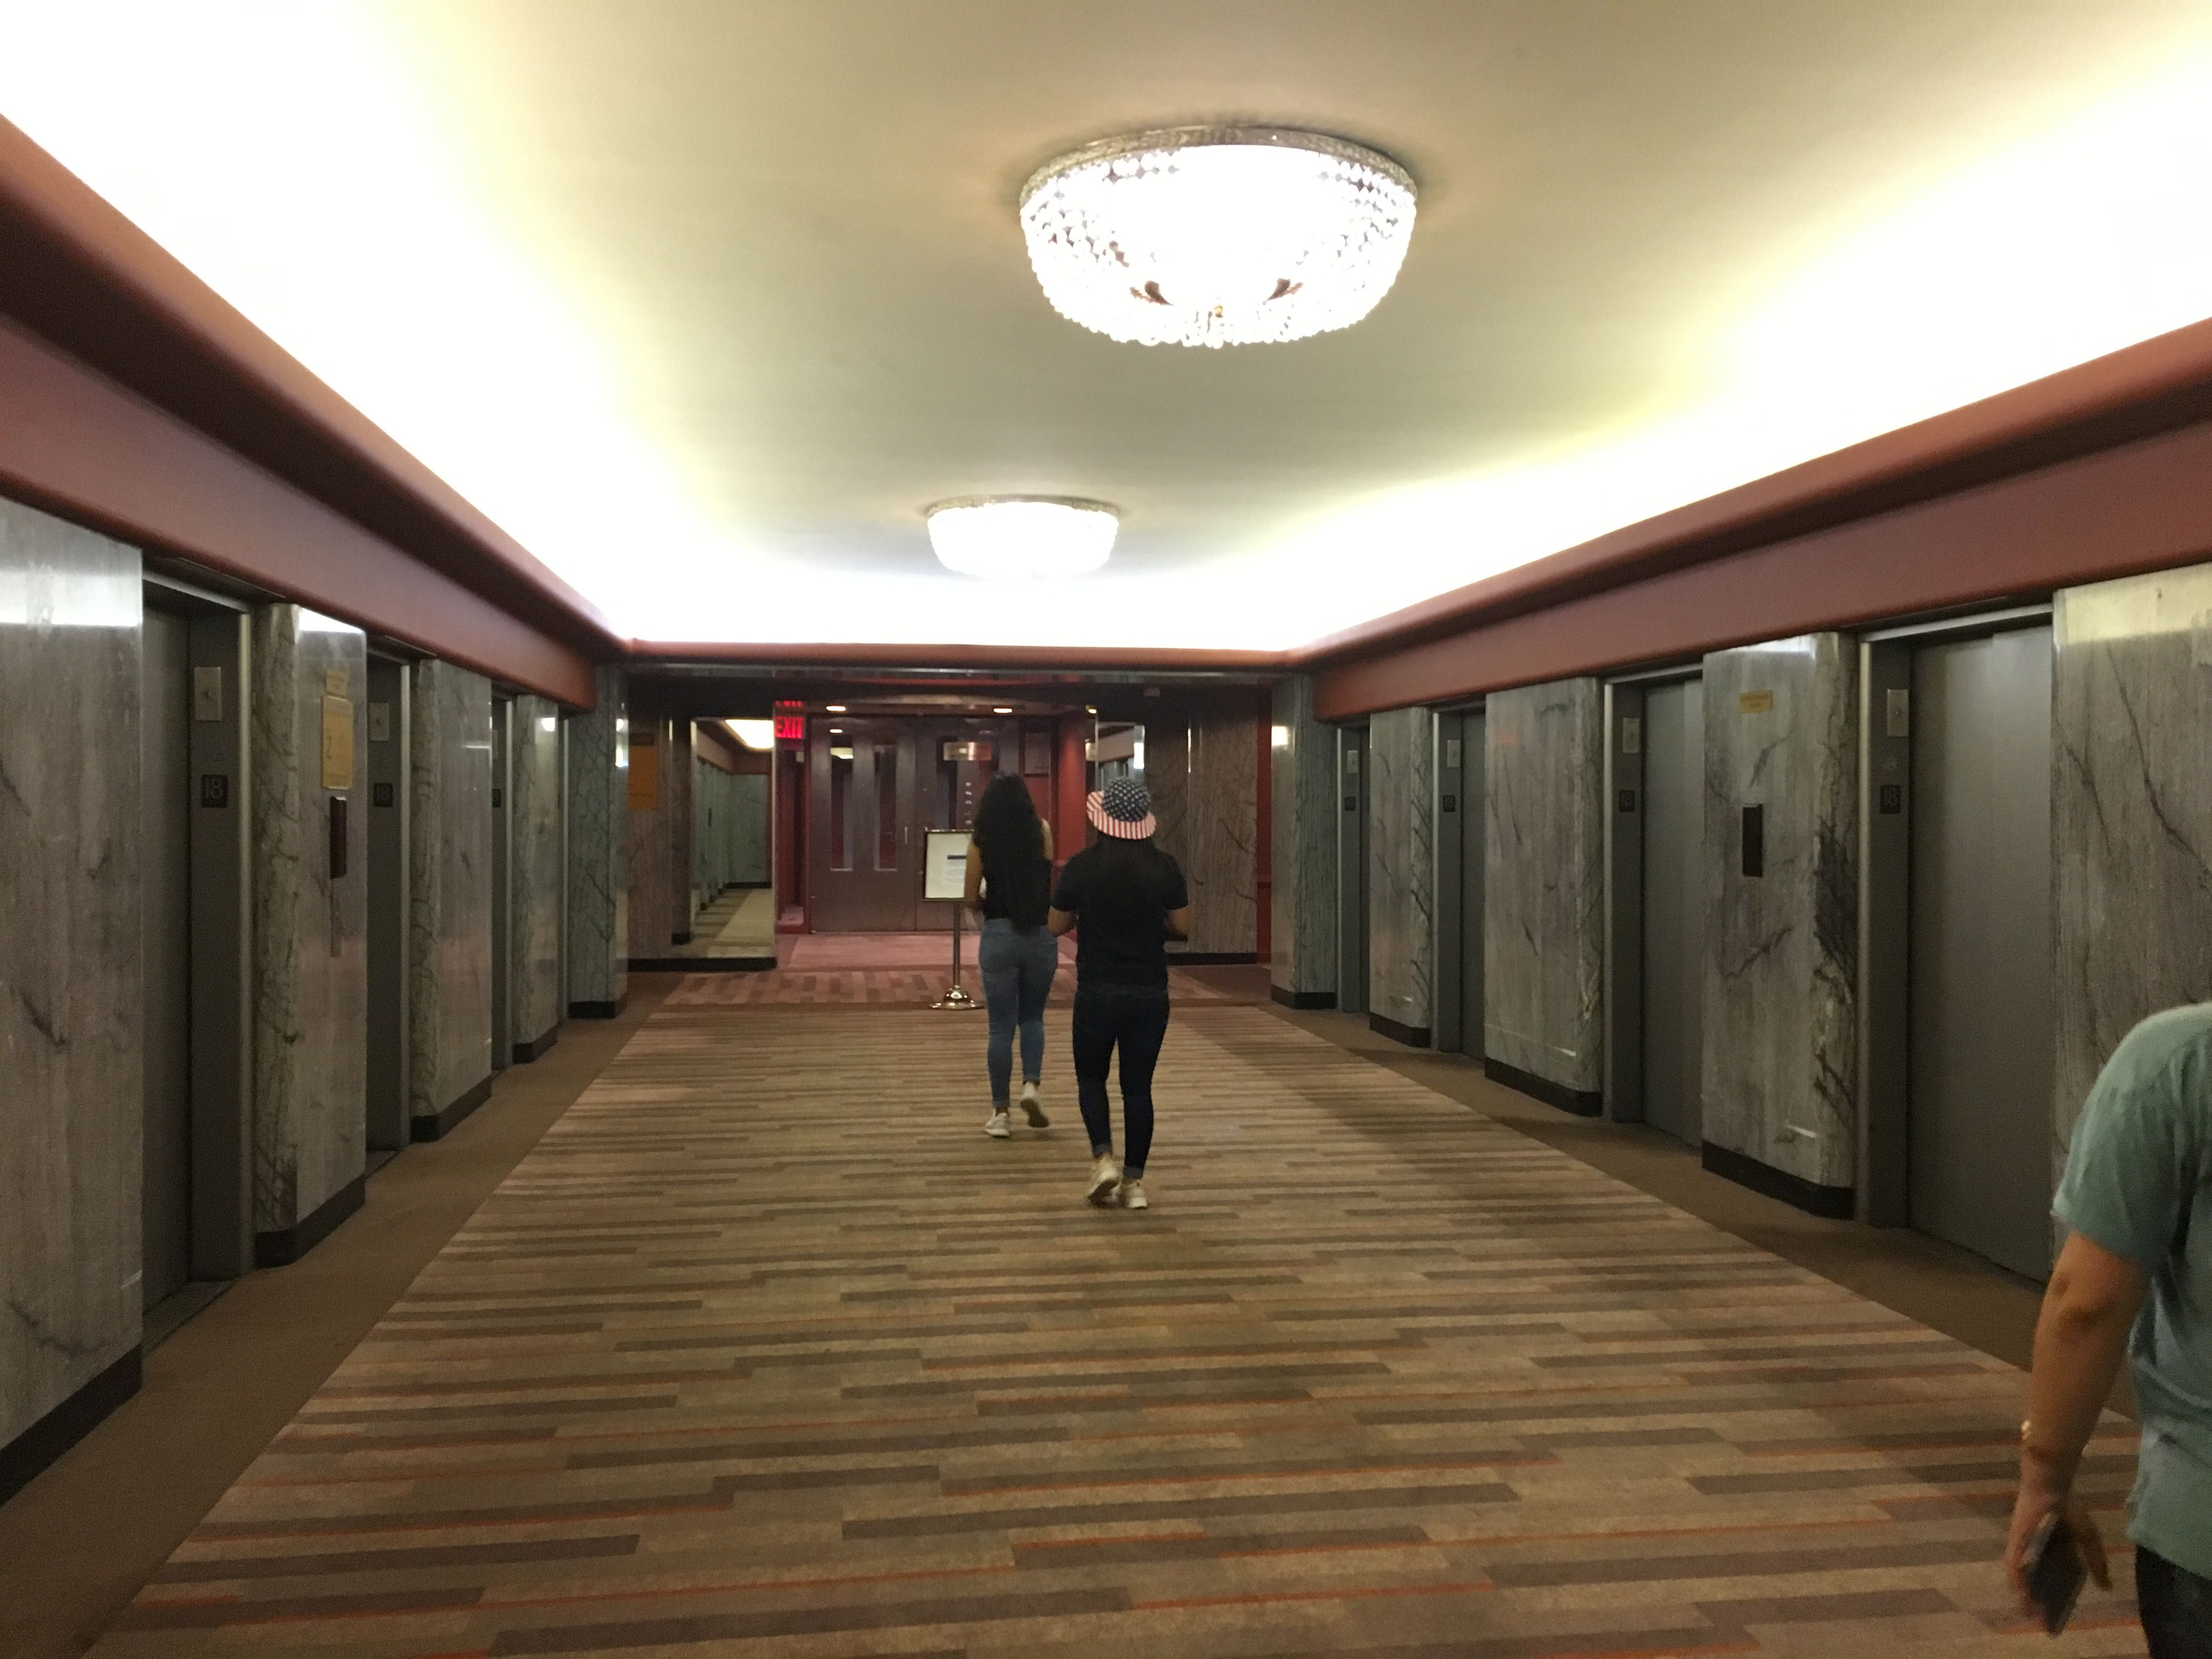 Hotel Pennsylvania in New York City elevators. Great place to stay ...